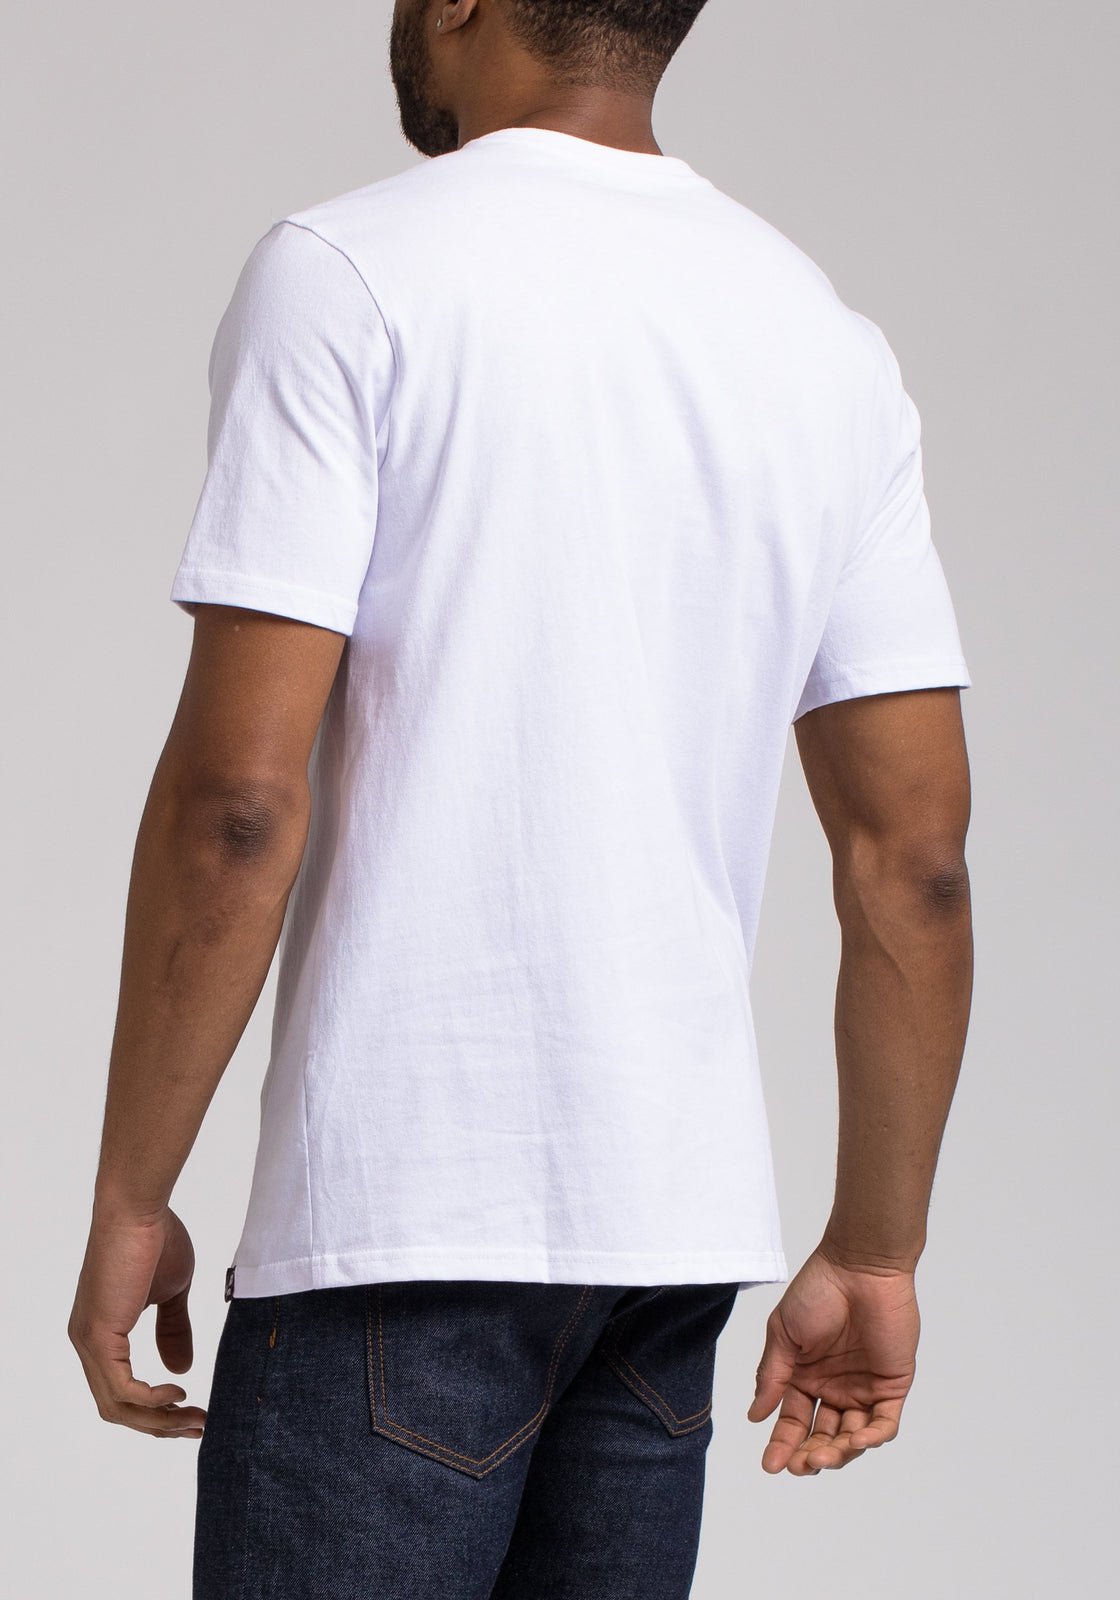 BP PALM SS SHIRT - Color: White